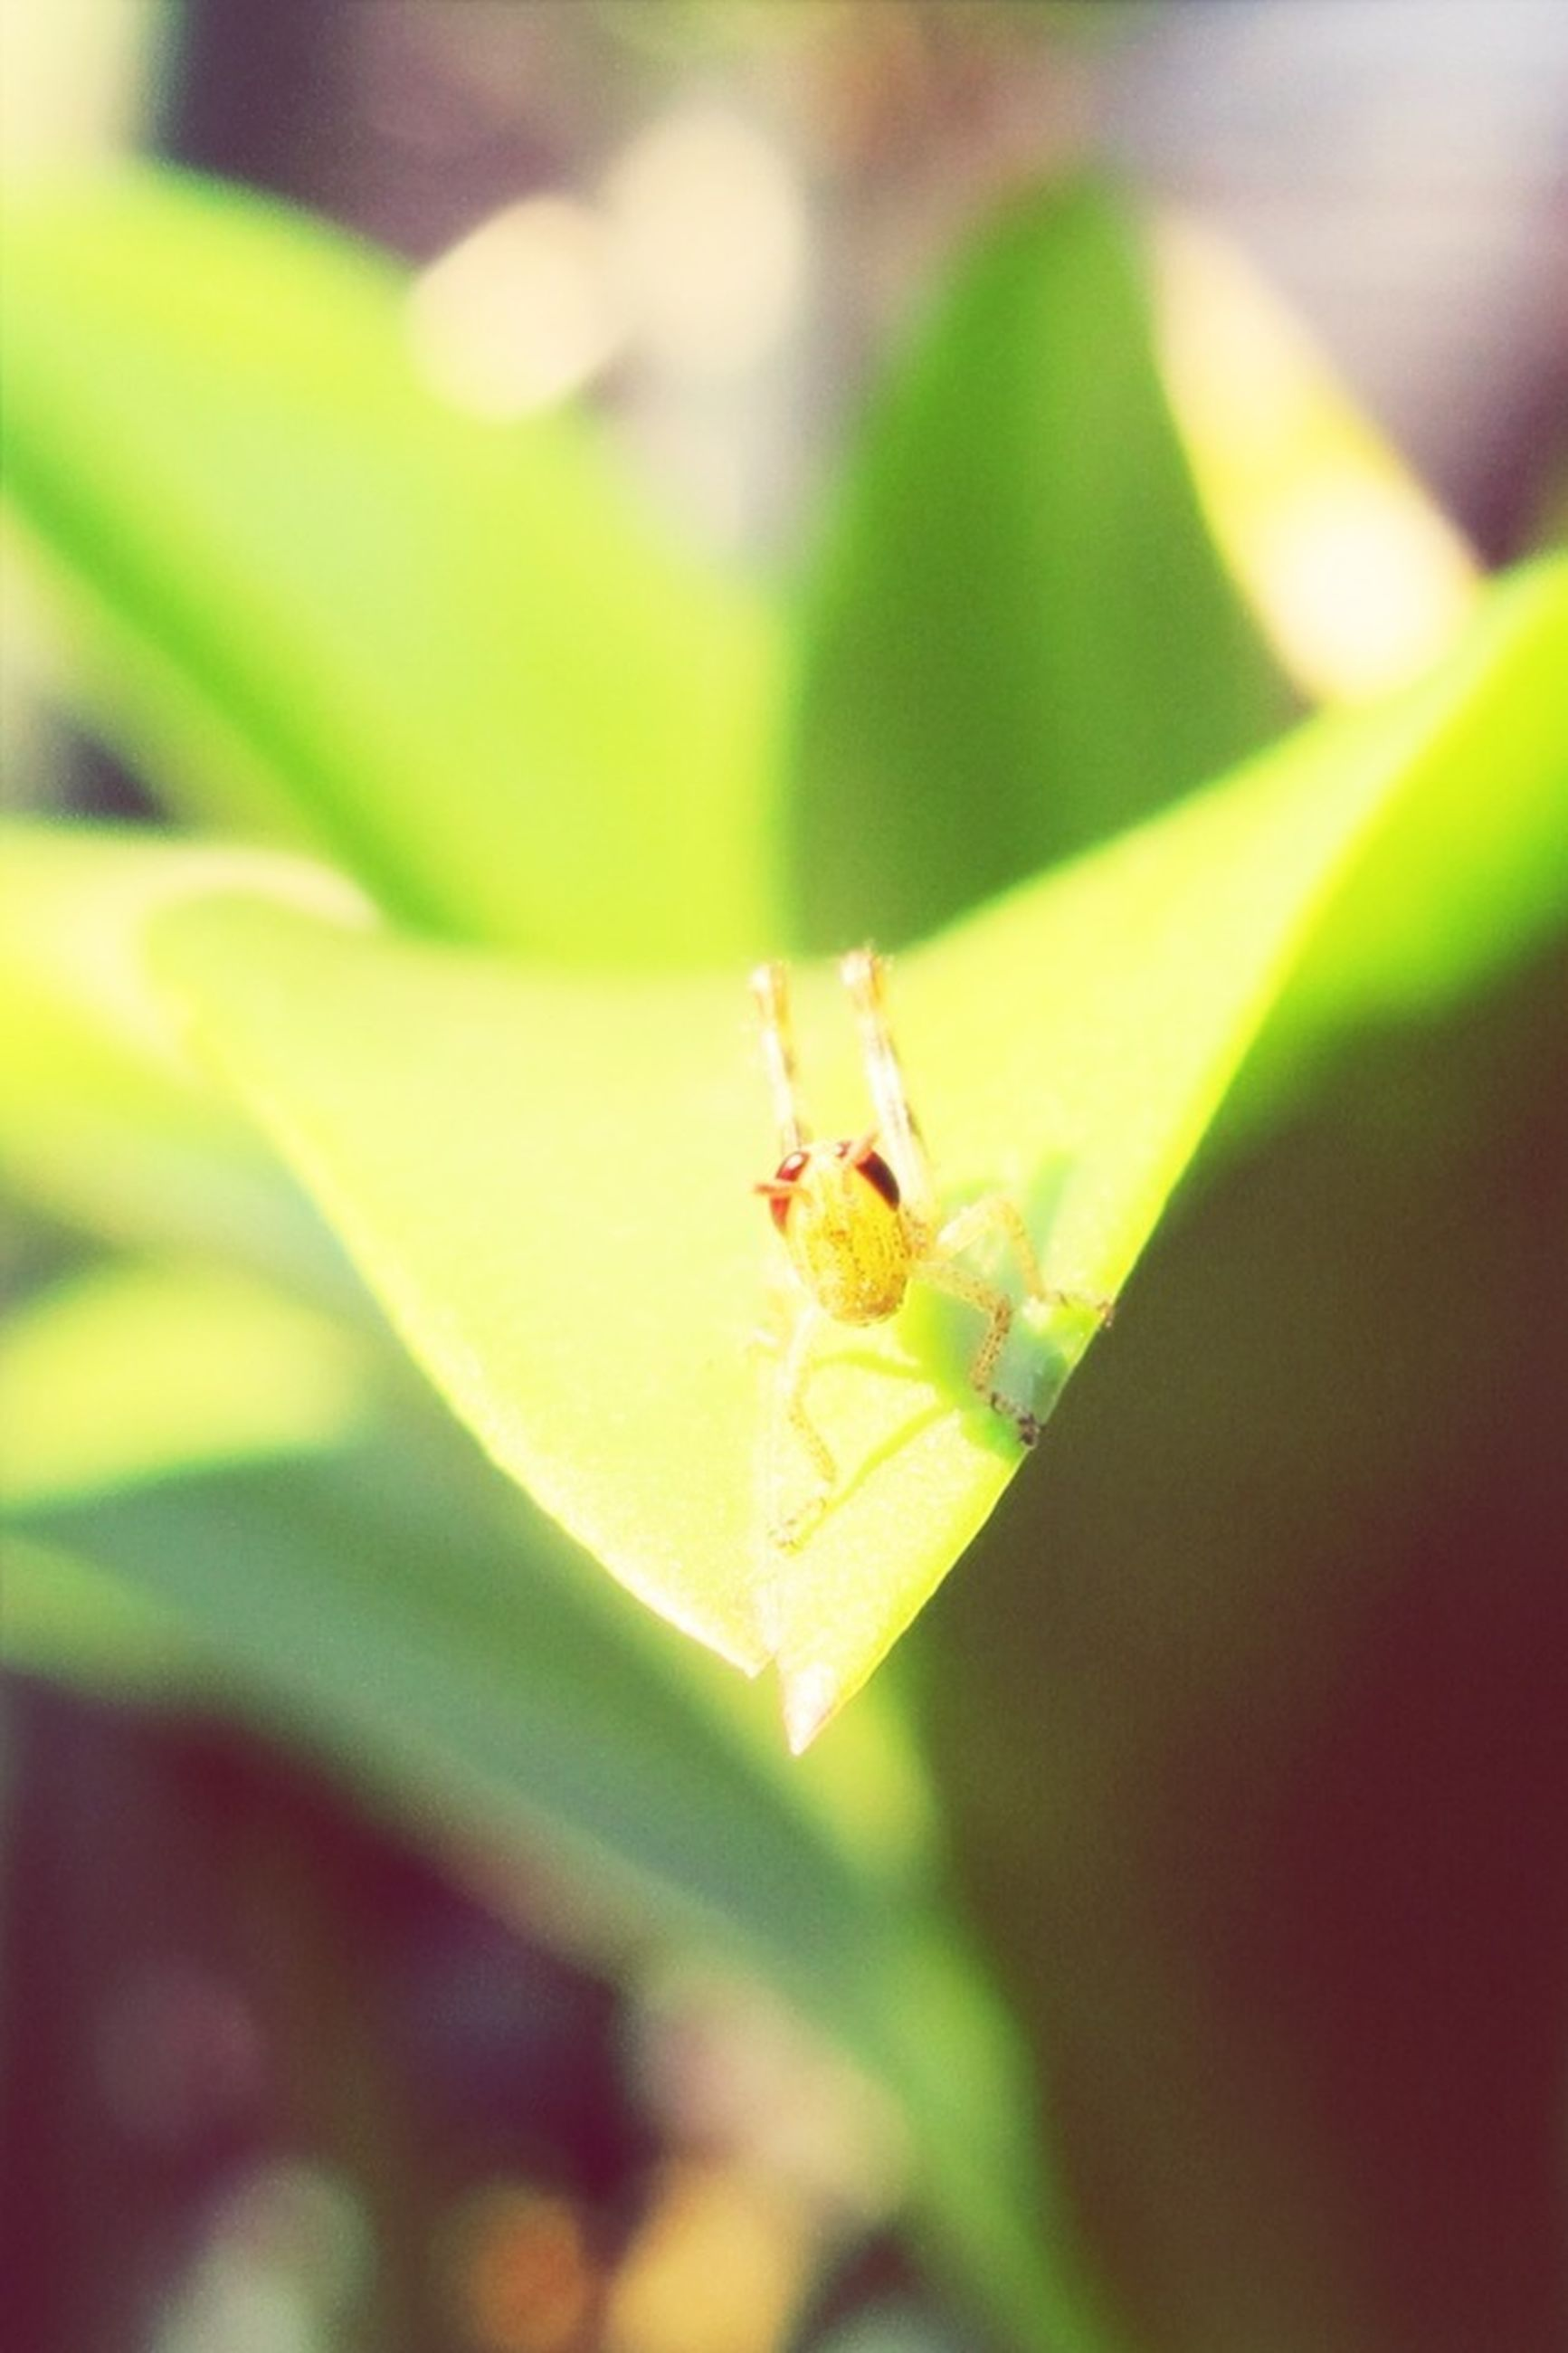 insect, one animal, animals in the wild, animal themes, wildlife, close-up, focus on foreground, selective focus, green color, dragonfly, nature, plant, animal antenna, leaf, yellow, day, grasshopper, outdoors, no people, beauty in nature